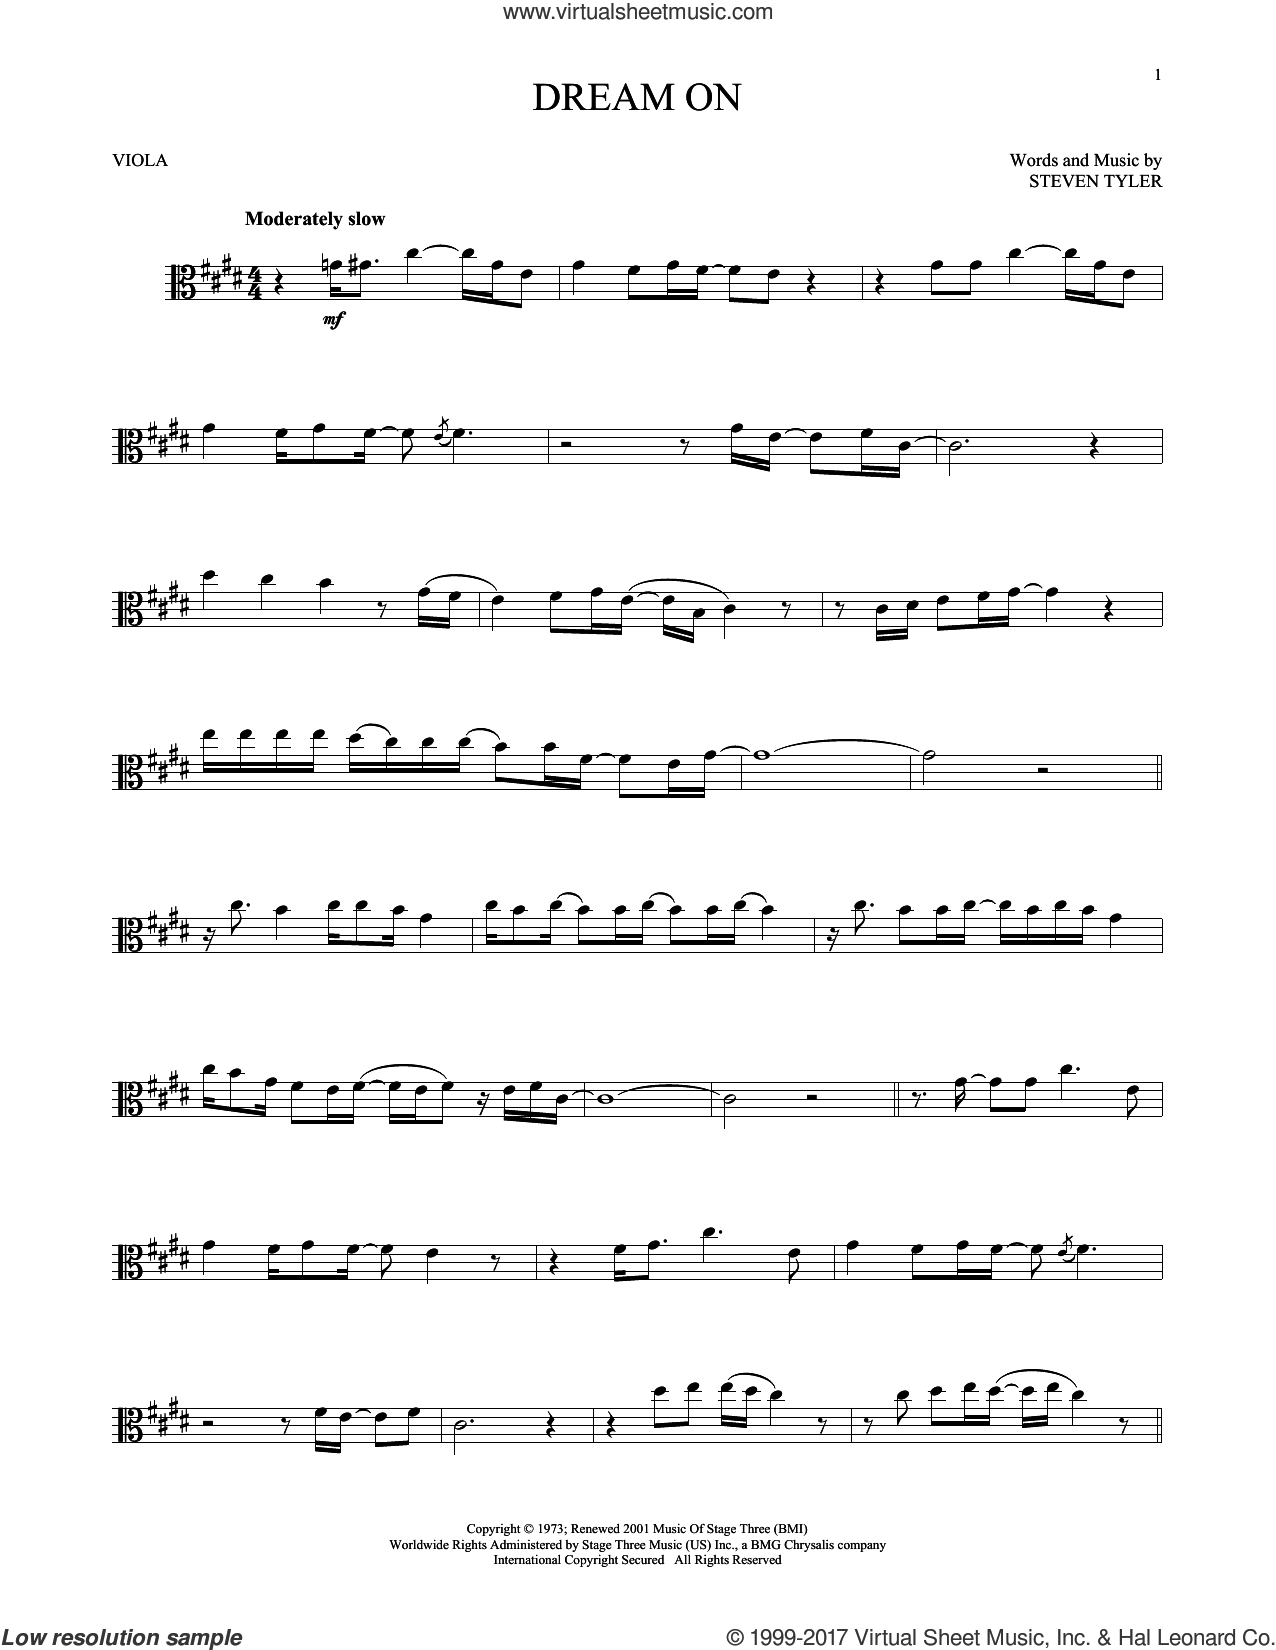 Dream On sheet music for viola solo by Aerosmith and Steven Tyler, intermediate skill level